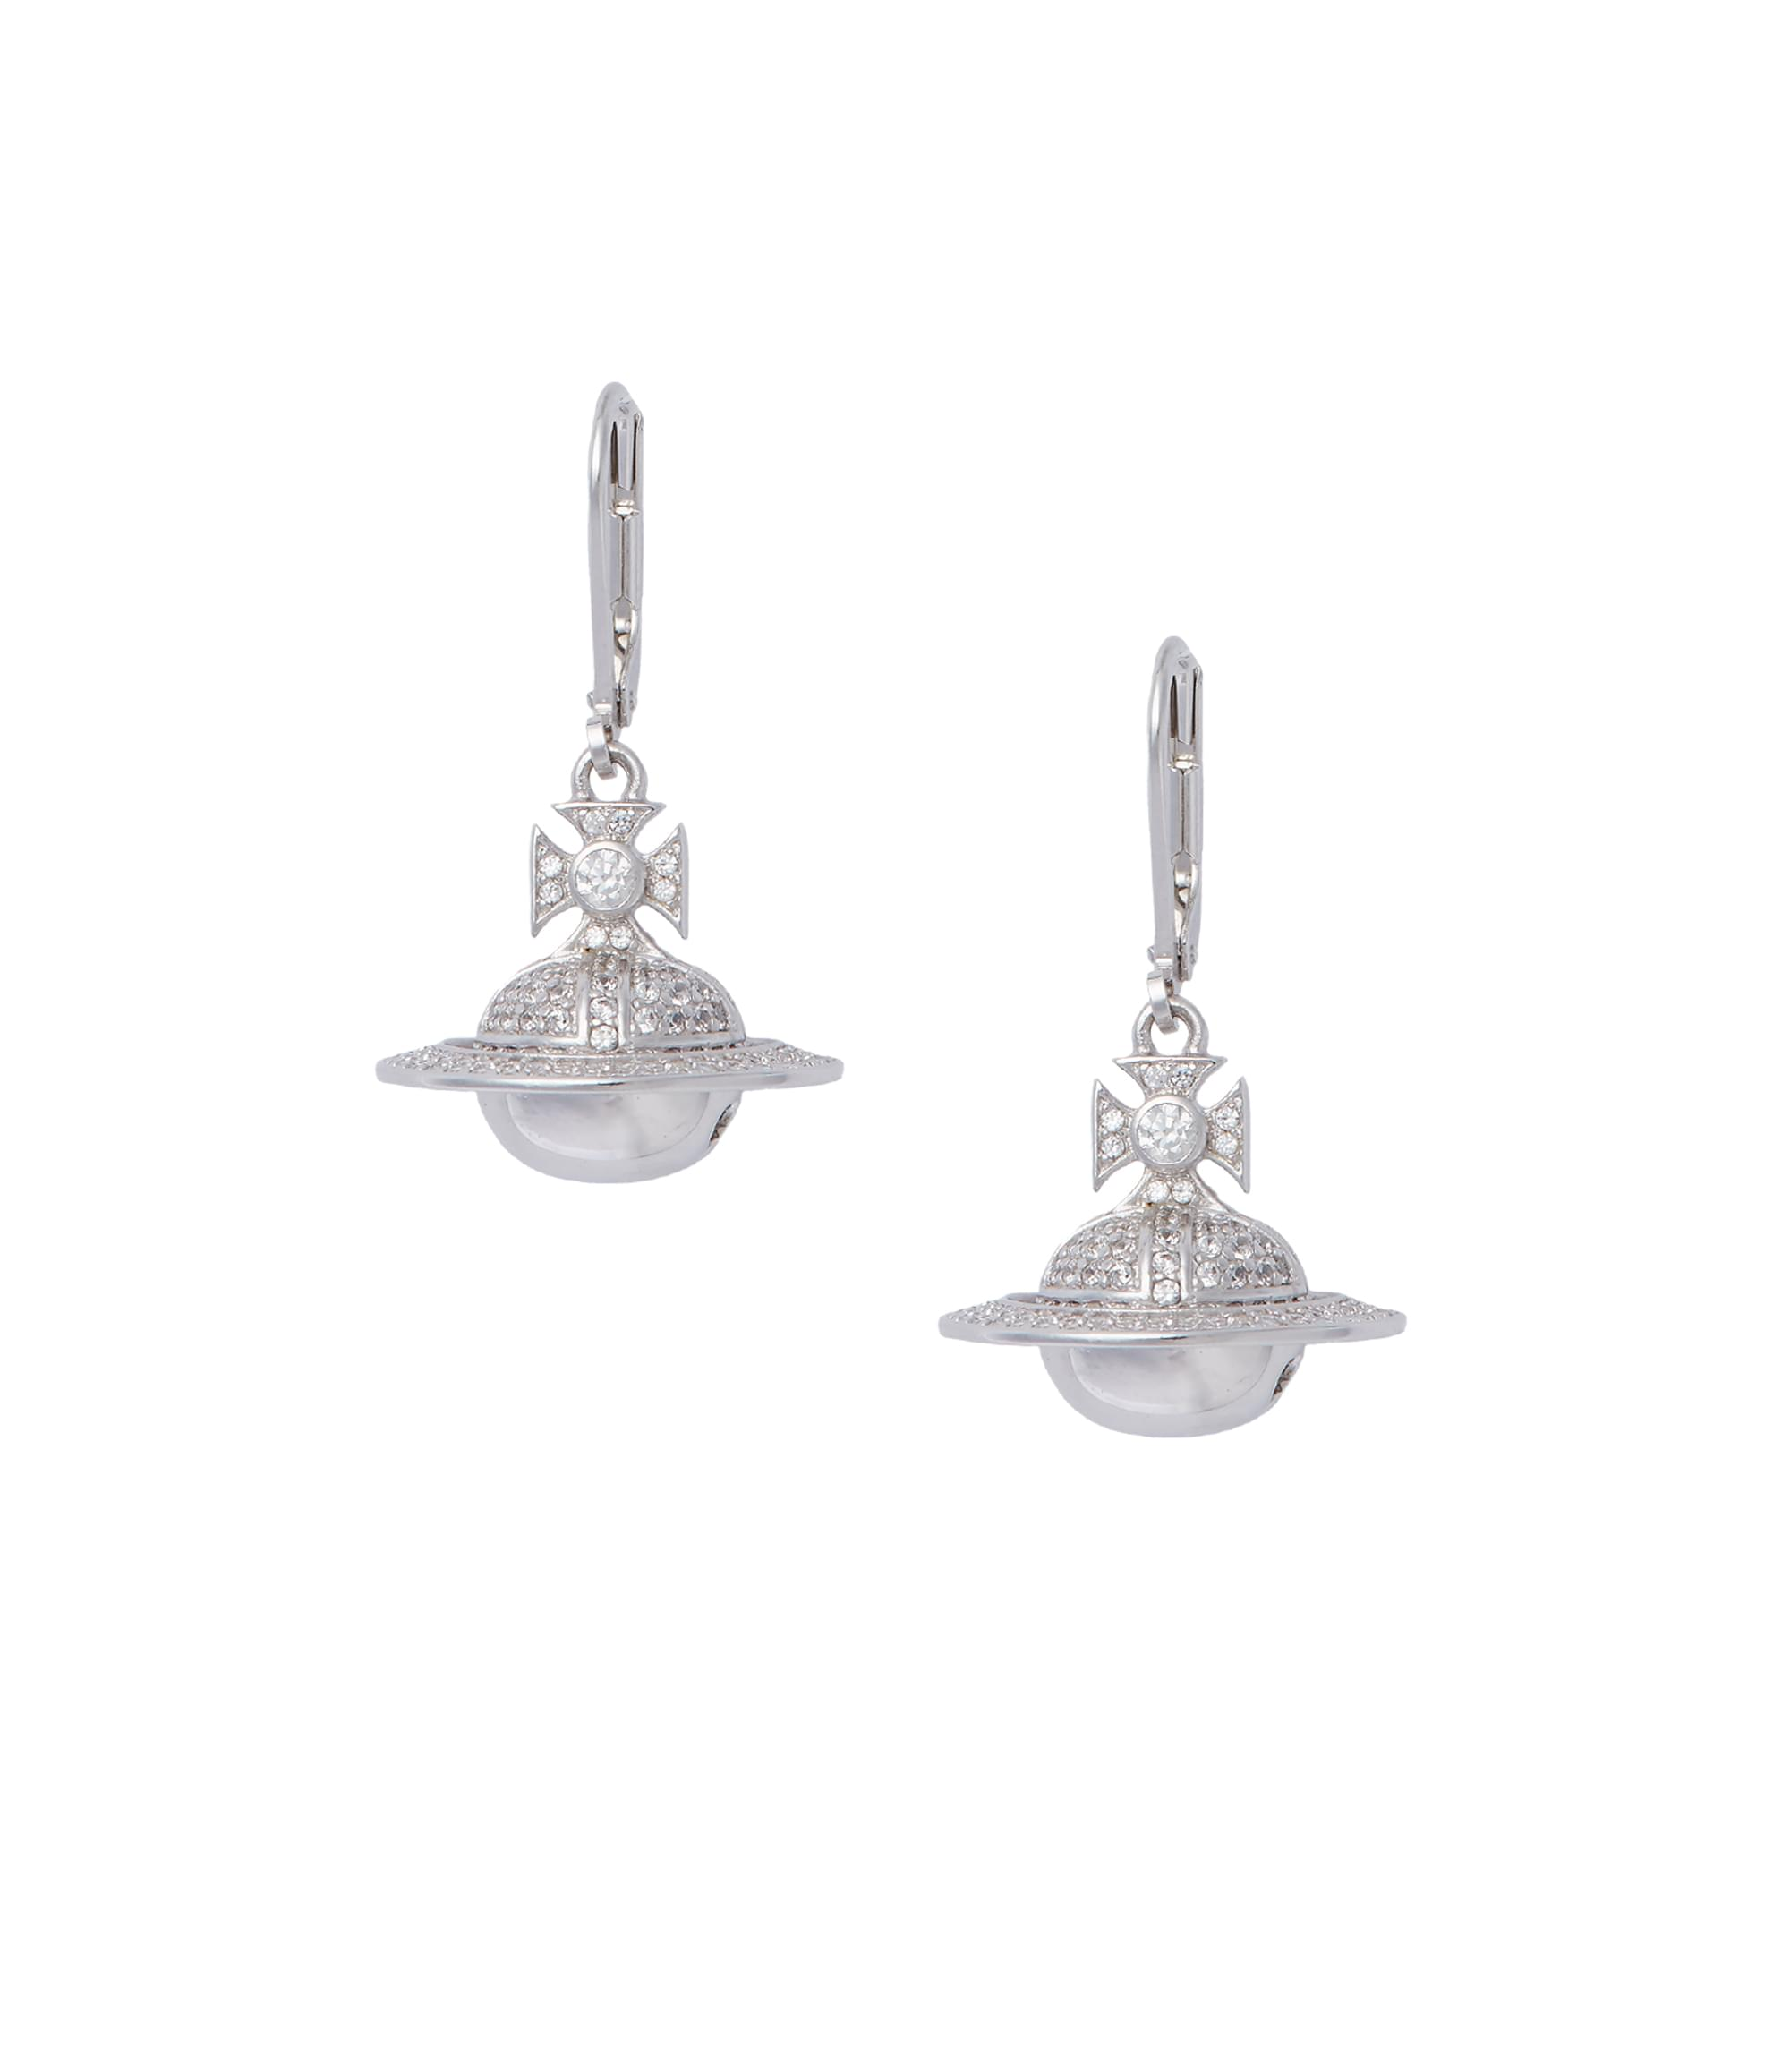 Vivienne Westwood Darius Orb Earrings